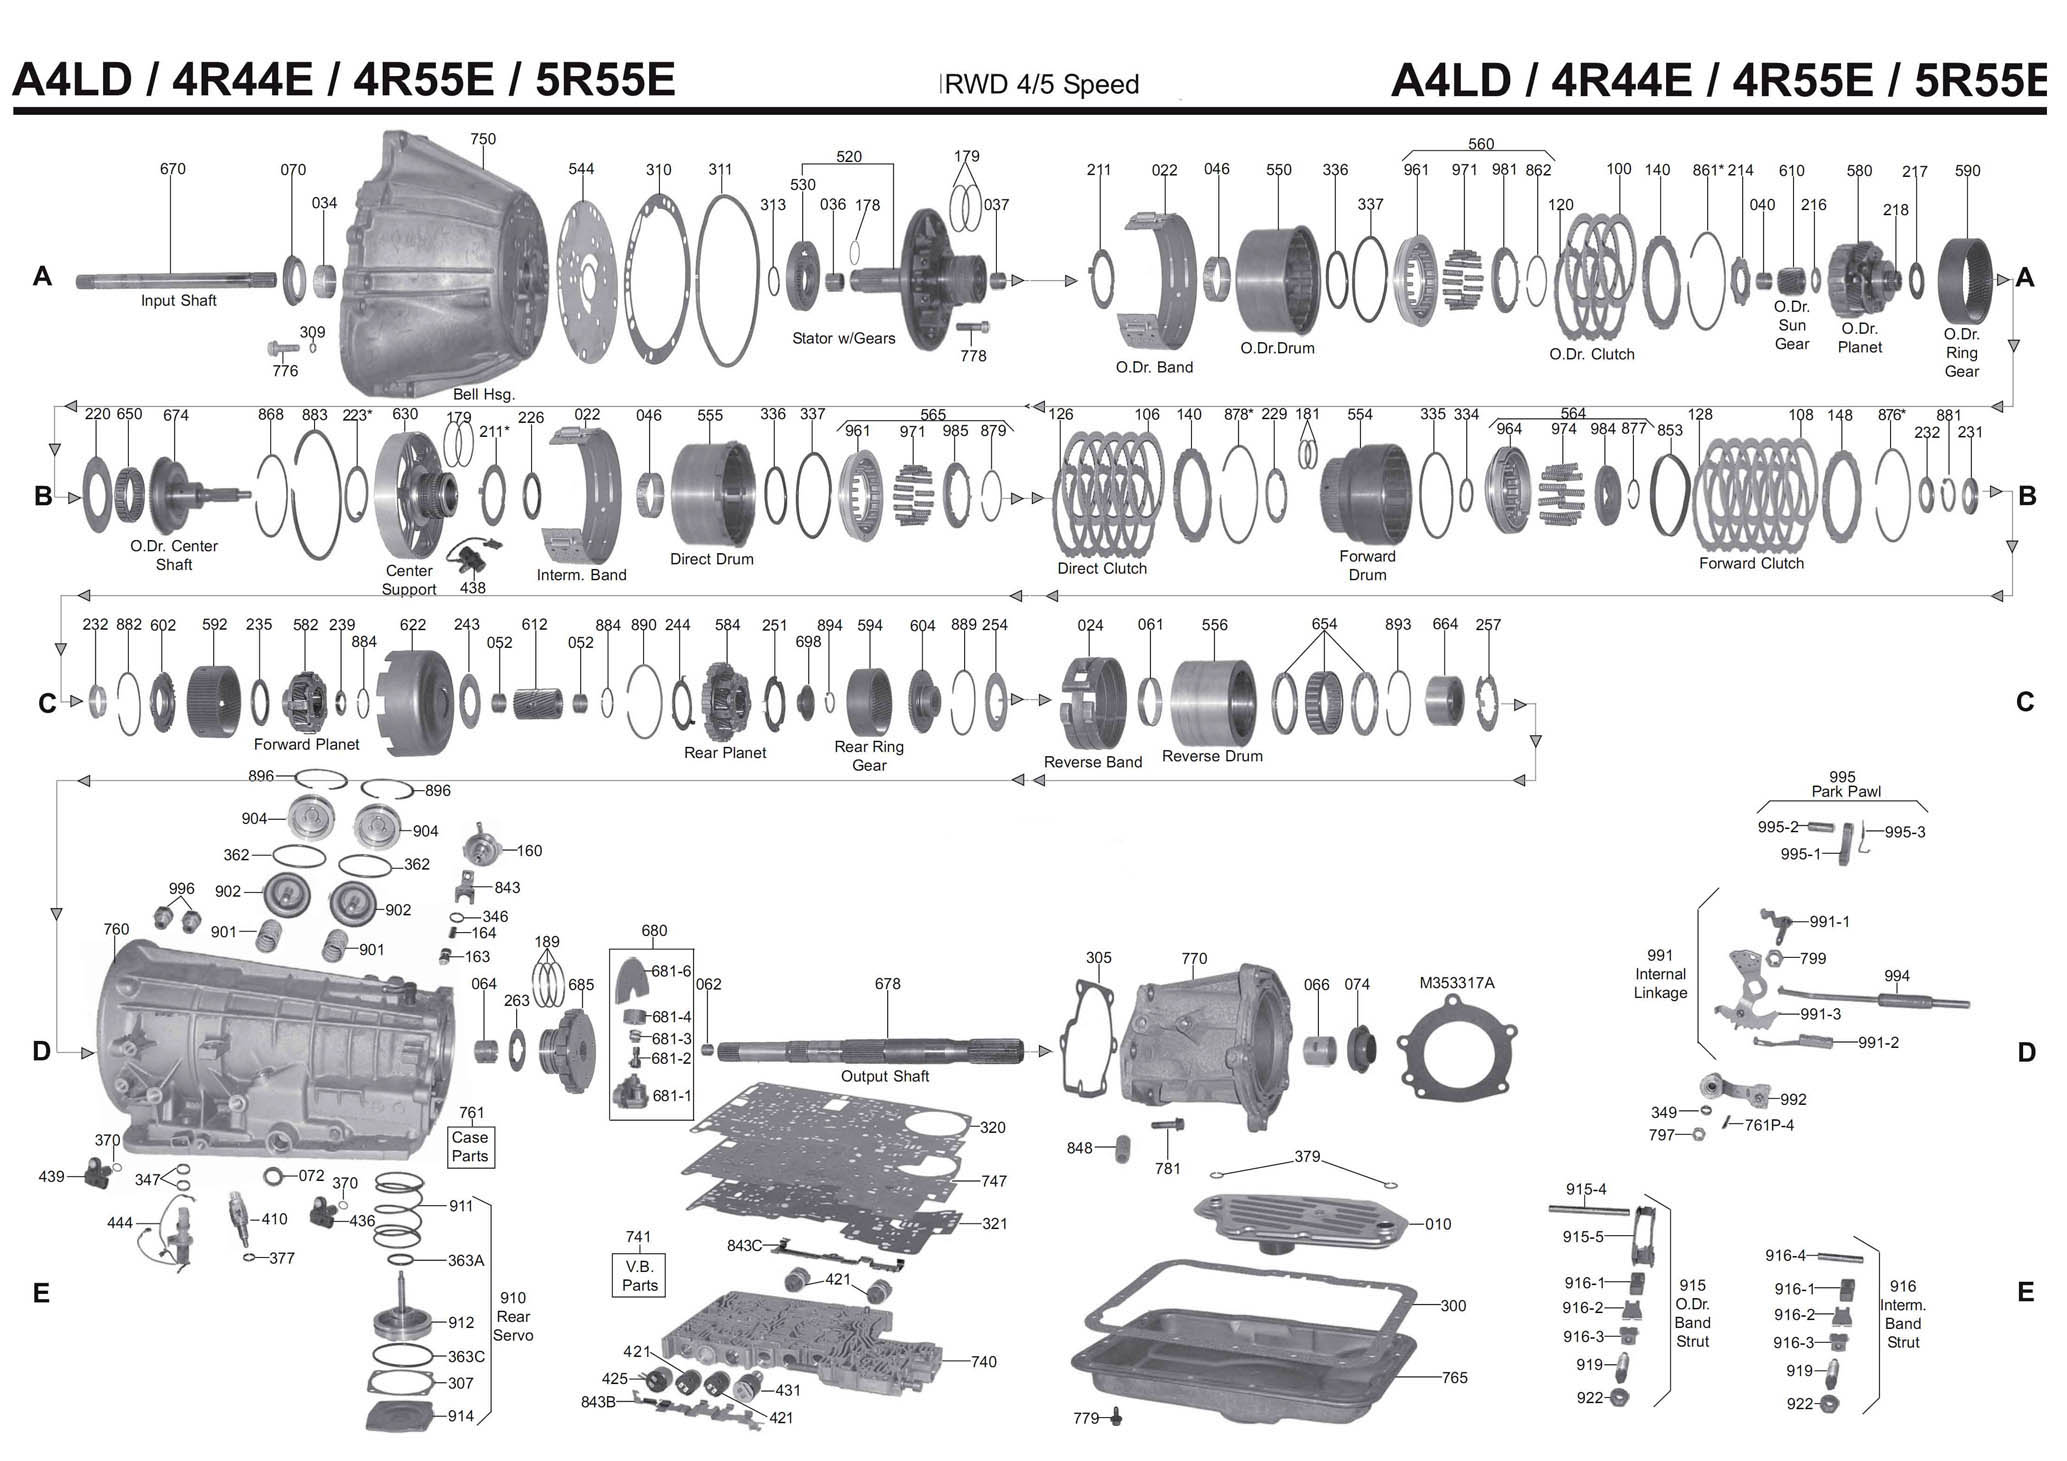 4r44e clutch diagram - fusebox and wiring diagram symbol-norm -  symbol-norm.ixorto.it  diagram database - ixorto.it